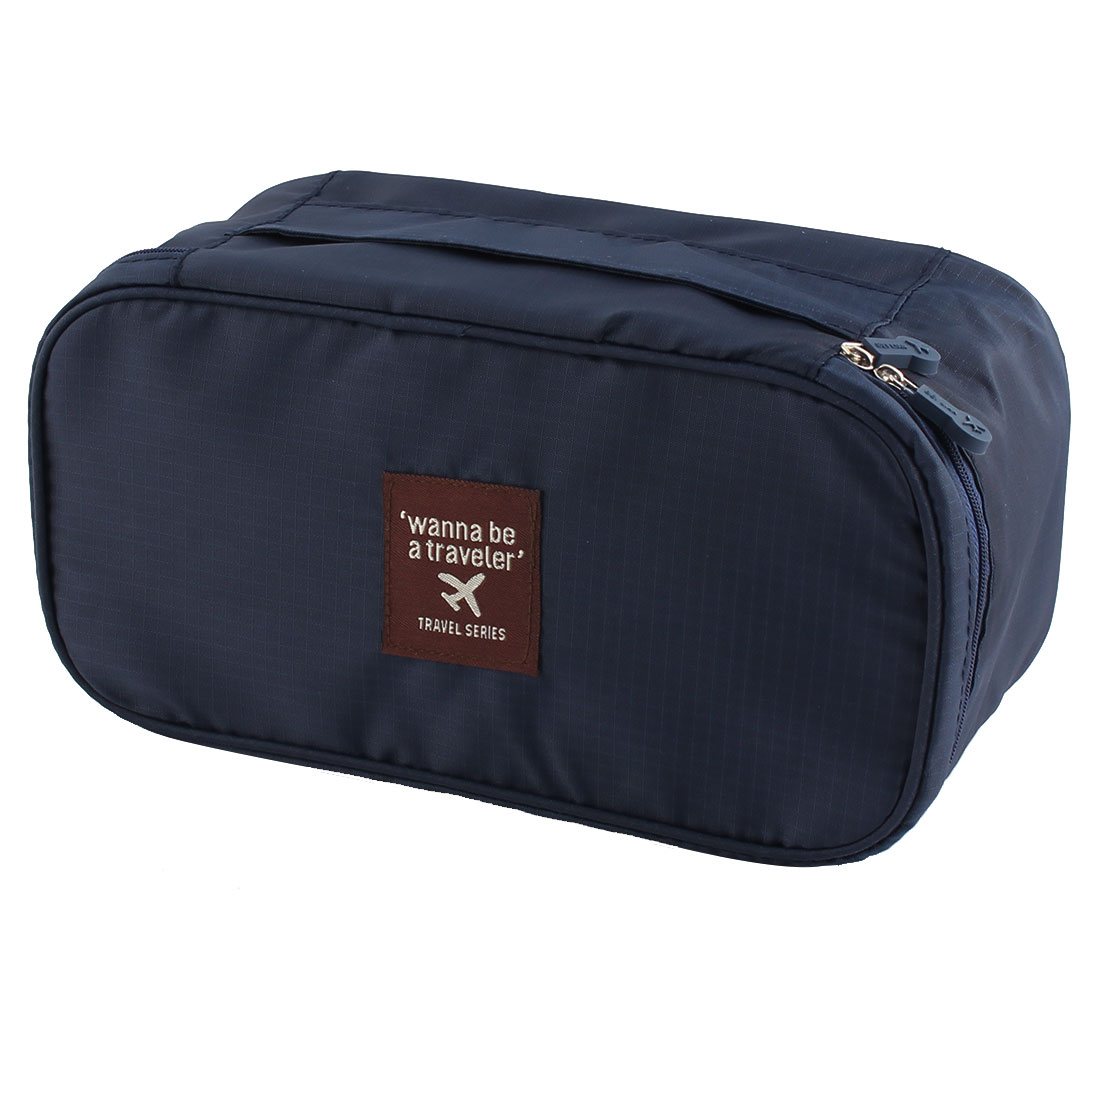 Travelling Business Trip Socks Underwear Bra Organizer Packing Bag Case Container Navy Blue